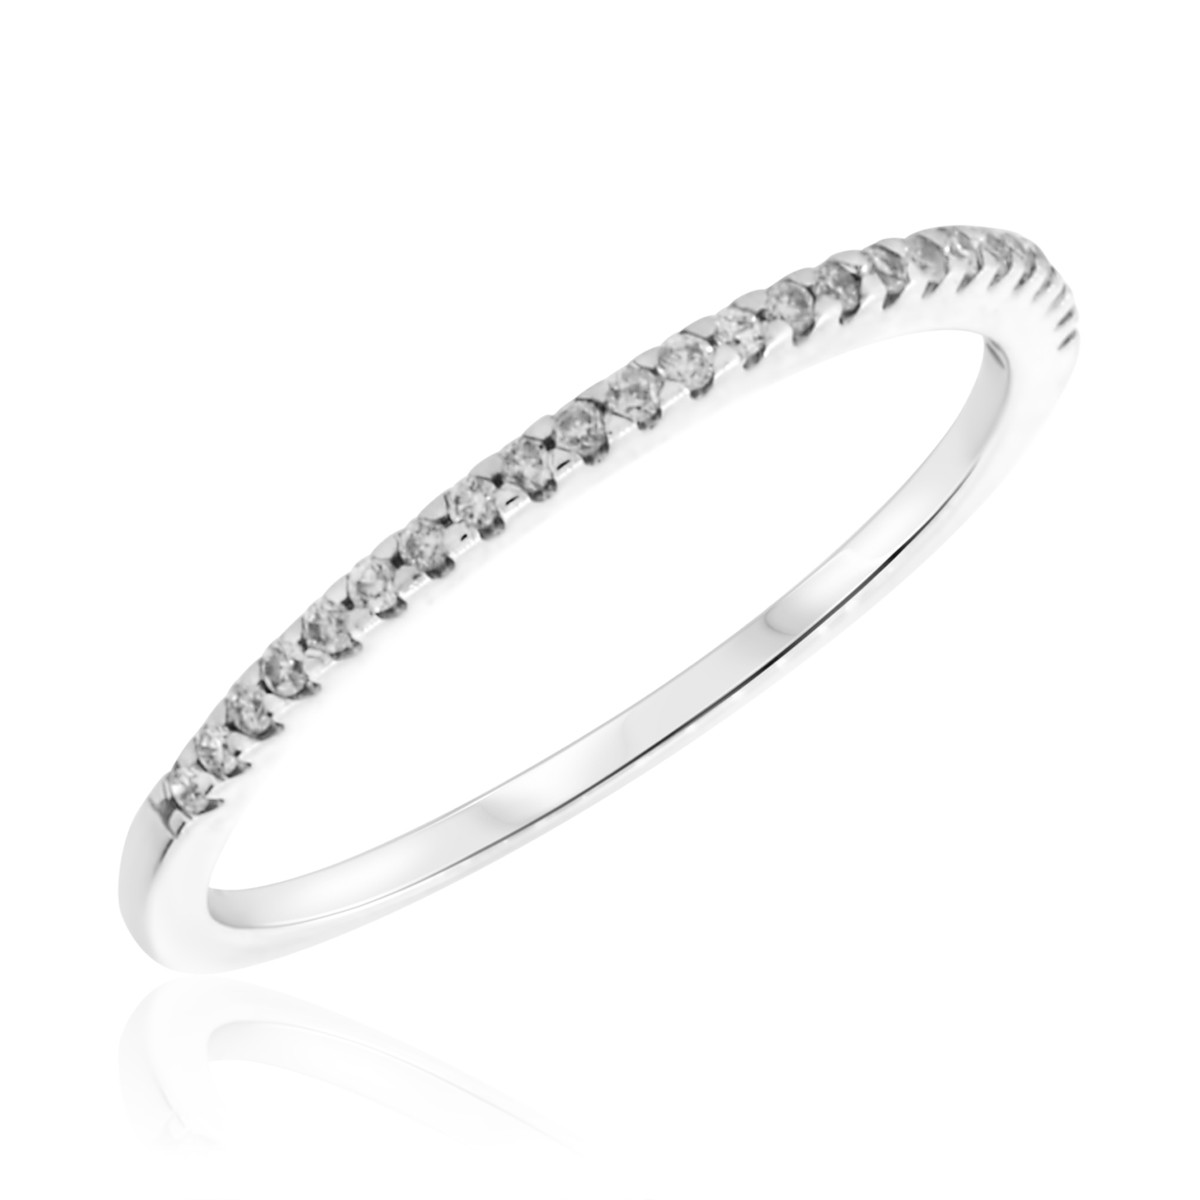 1/10 Carat T.W. Round Cut Diamond Ladies Wedding Band 14K White Gold